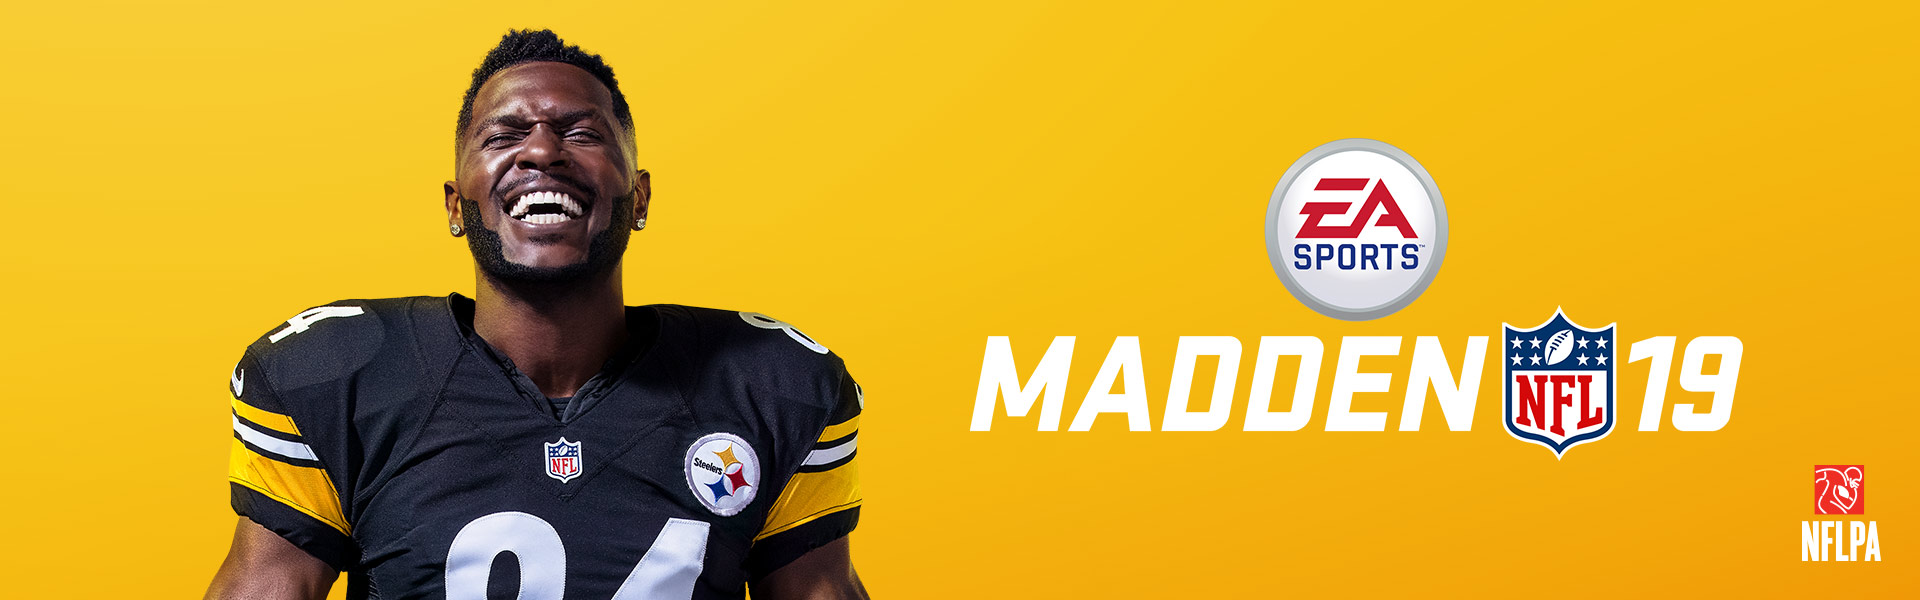 EA Sports Madden NFL 19, Een uitgelaten Antonio Brown lacht